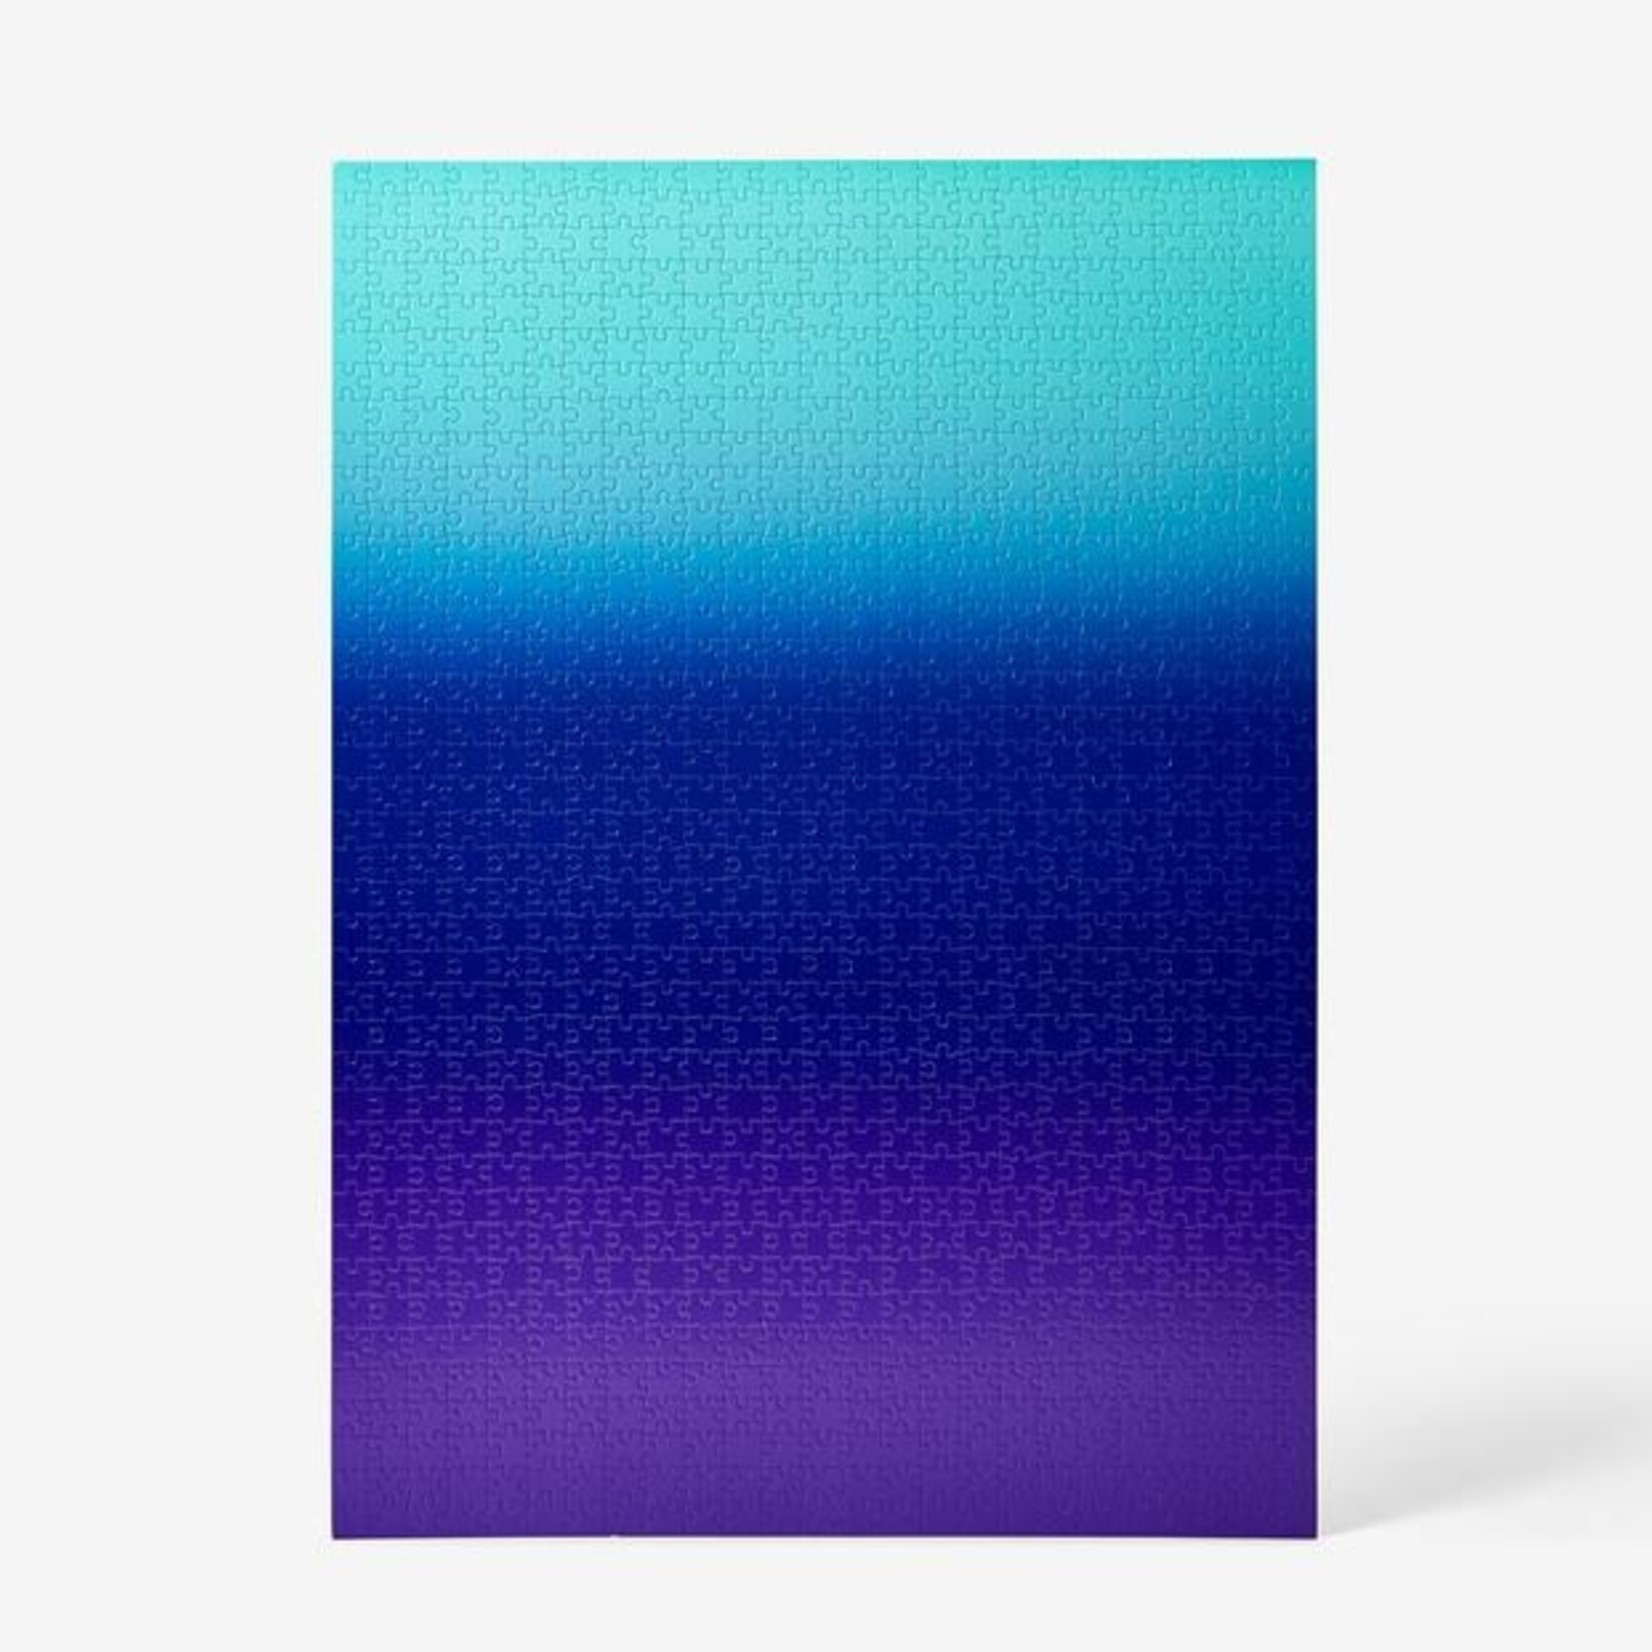 Areaware Areaware Gradient Puzzle Large Purple/Teal